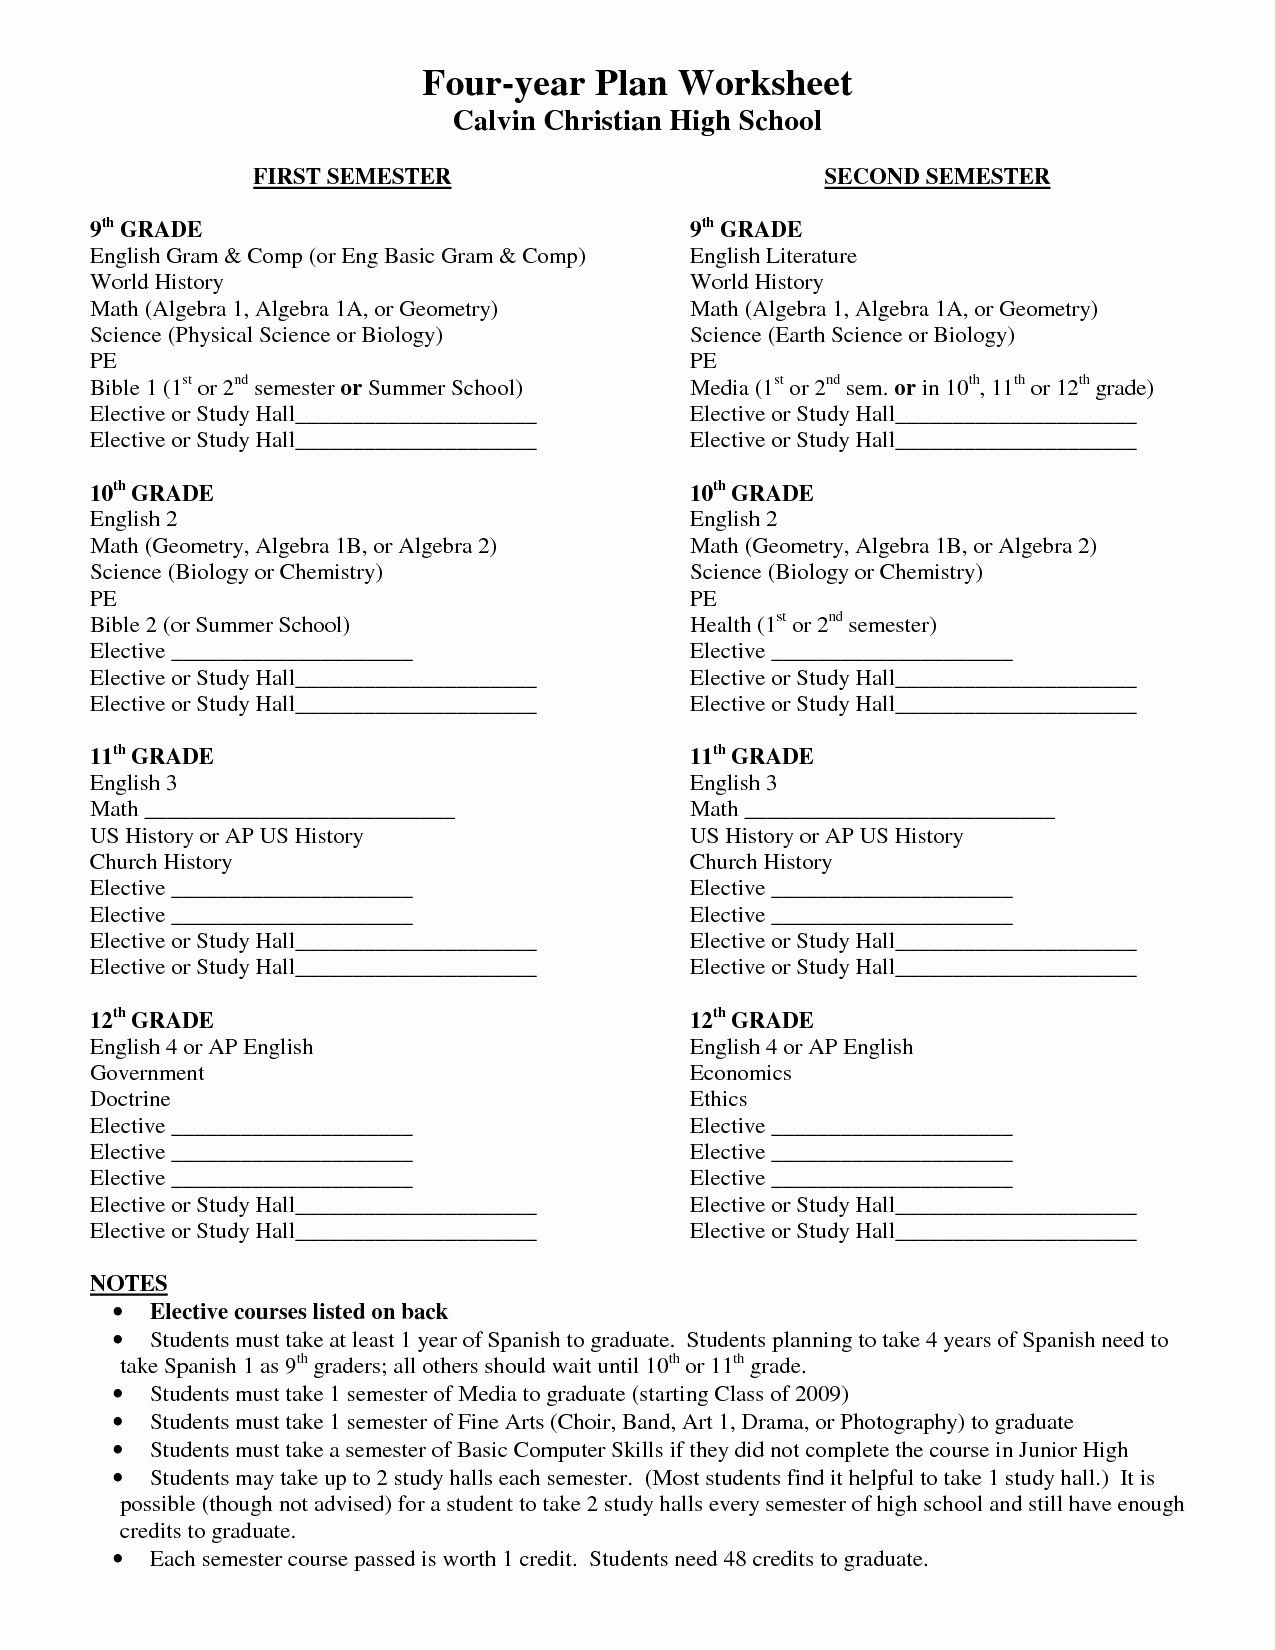 4 Free Math Worksheets Second Grade 2 Addition Add 4 2 Digit Numbers In Columns Full Geometry Math Worksheets Geometry Worksheets Free Math Worksheets